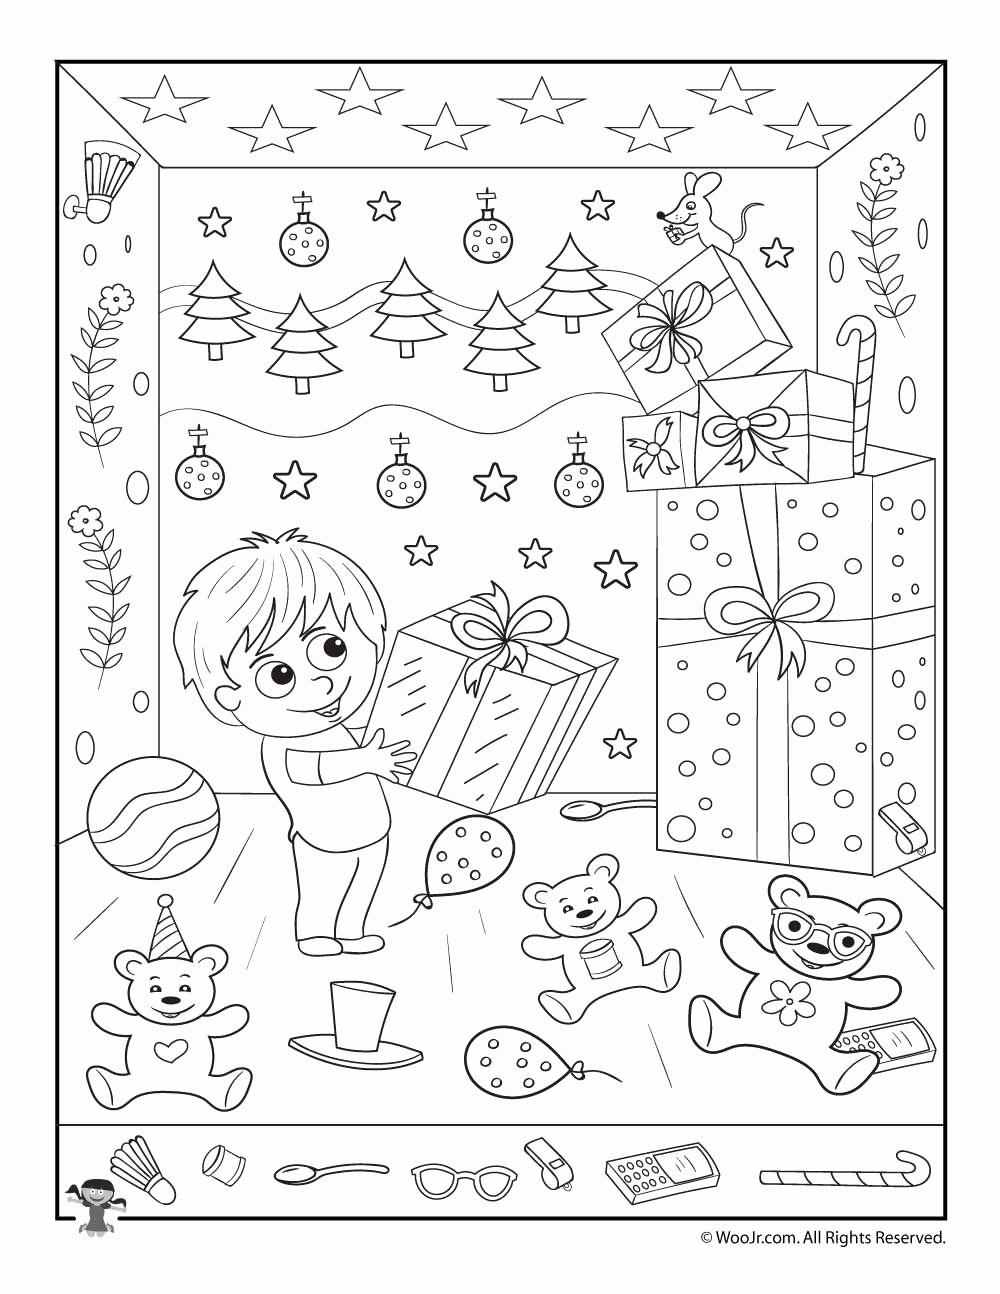 Christmas Hidden Picture Puzzles Printable New 10 Intriguing Christmas Hidden